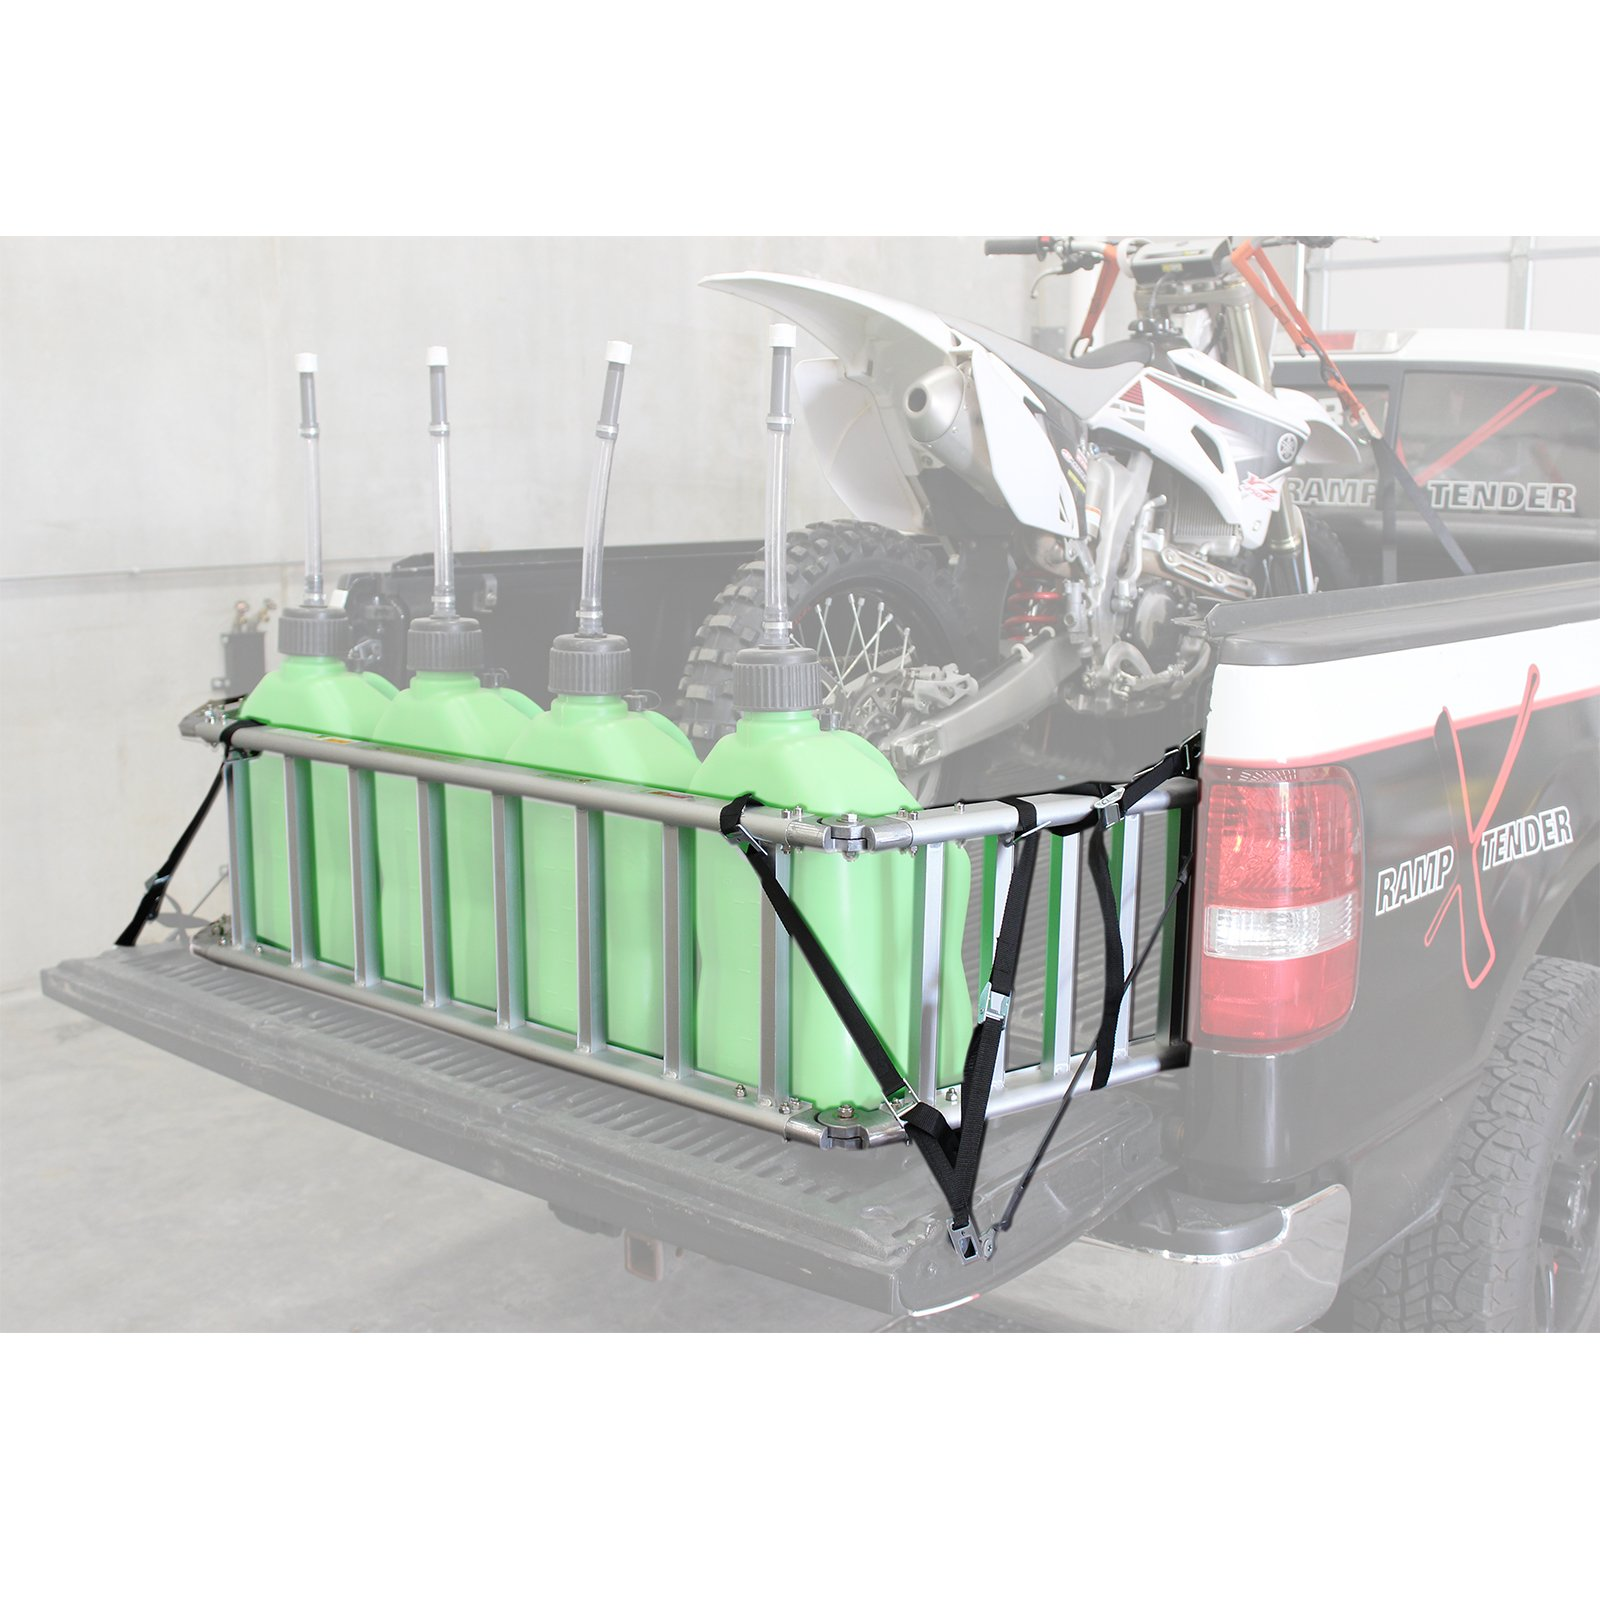 Extreme Max (NR002S-SLVR) Motorcycle RampXtender Aluminum Ramp Set and Tailgate Extender Combo by Extreme Max (Image #11)